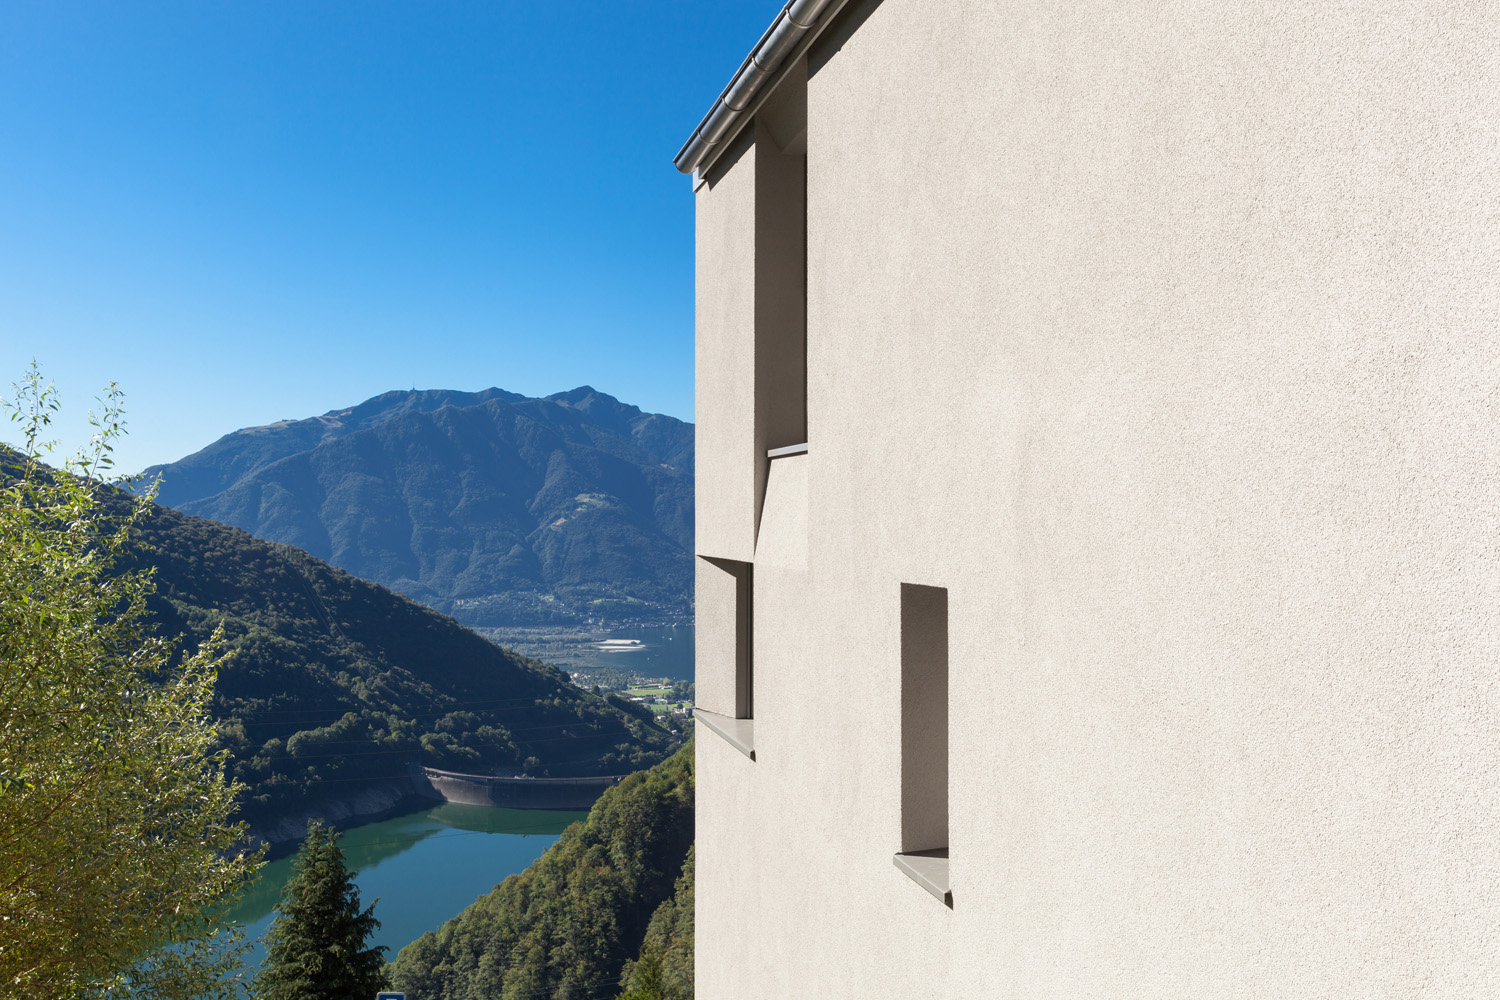 East facade with valley view Alexandre Zveiger, Lugano CH